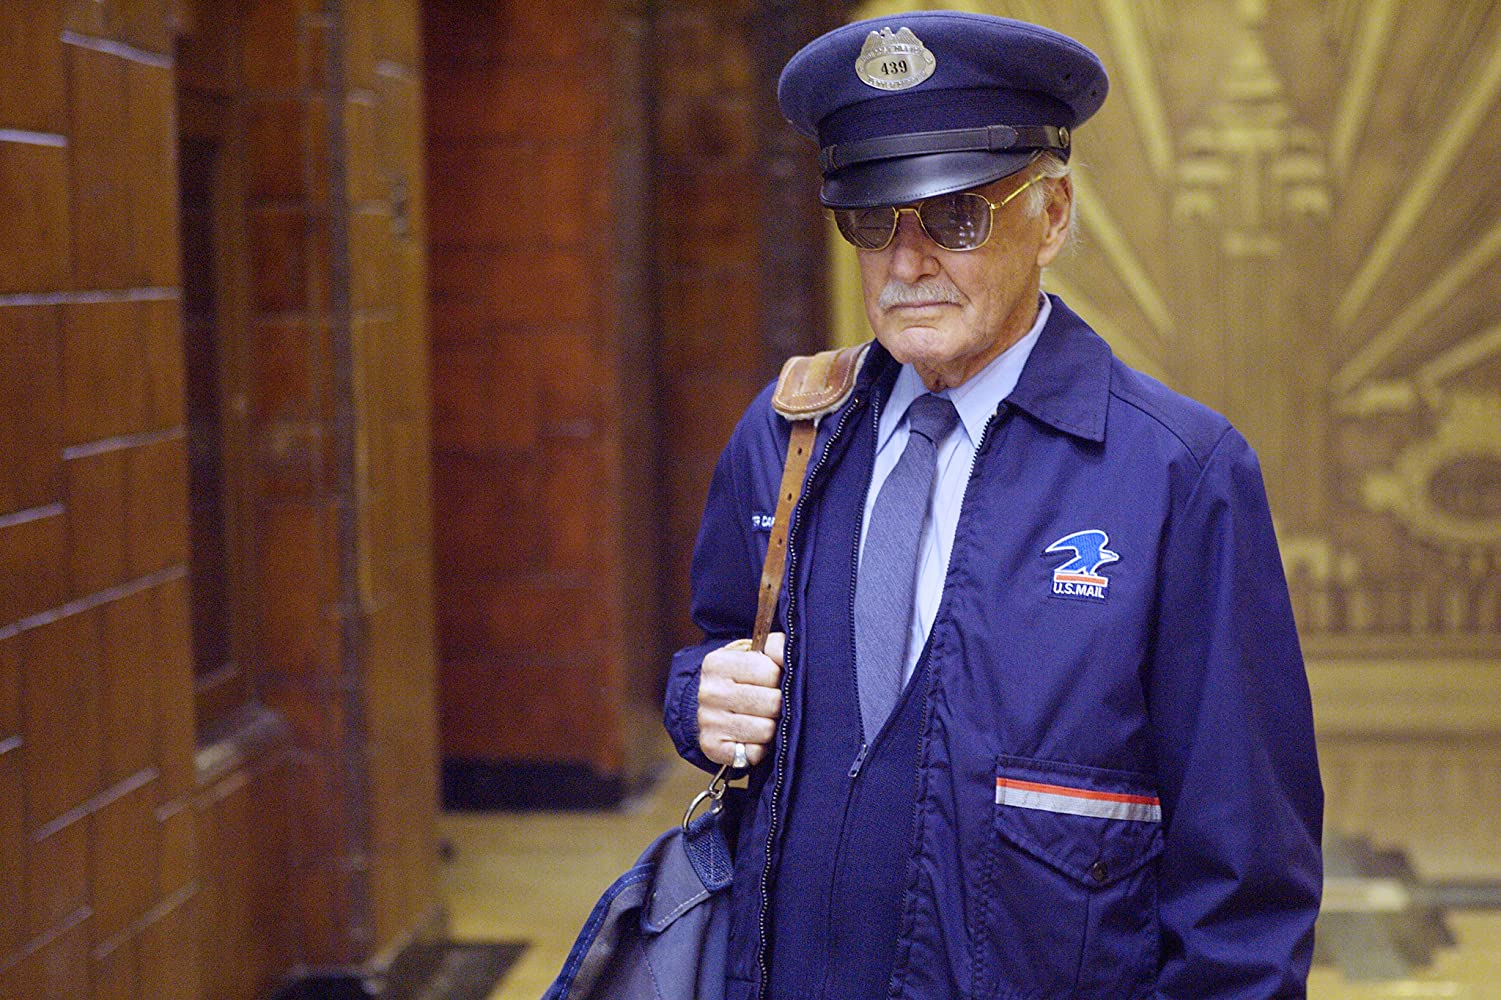 Stan Lee in Fantastic Four 2005